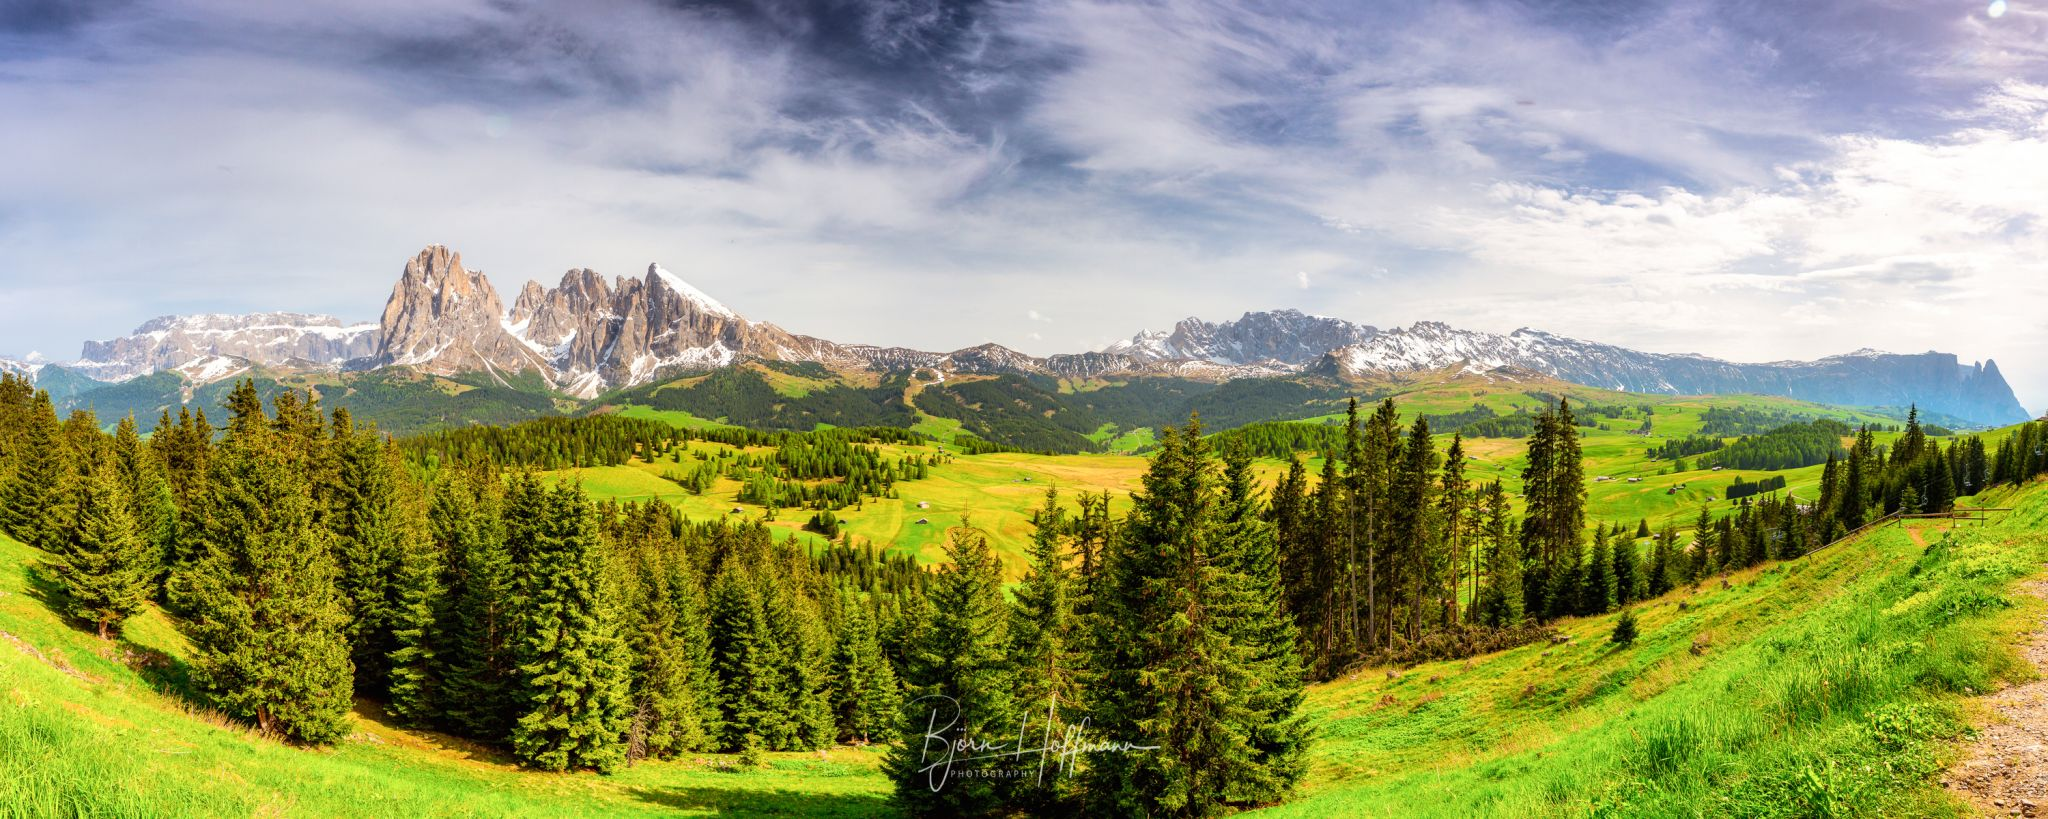 Seiser Alm / Alpe di Siusi, View from cable car station, Italy